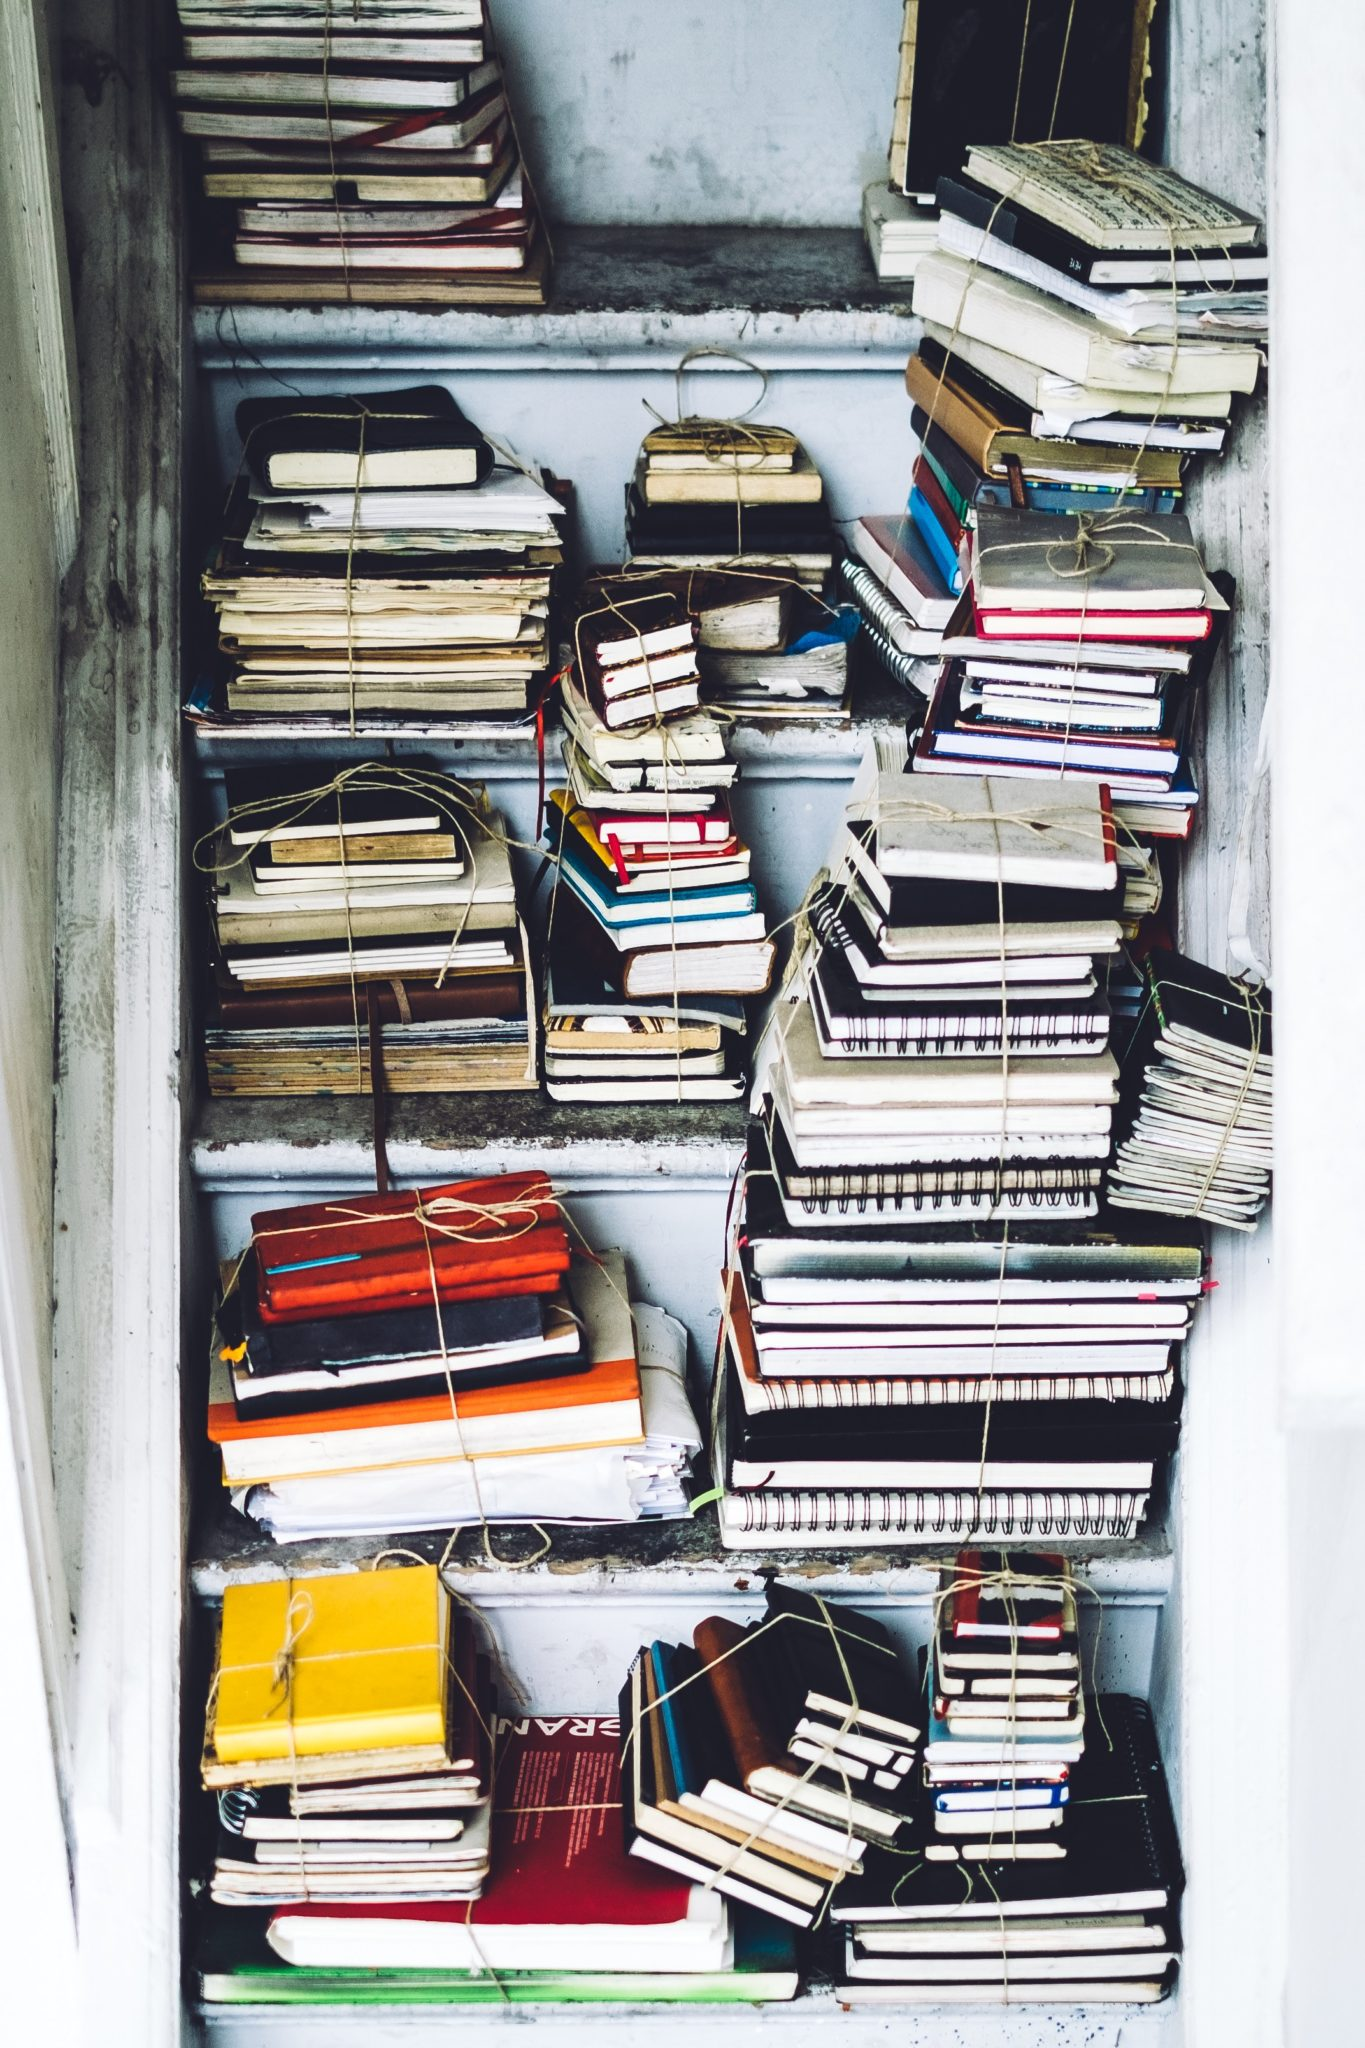 Stacks of writing journals, bound with string, on wooden bookshelf